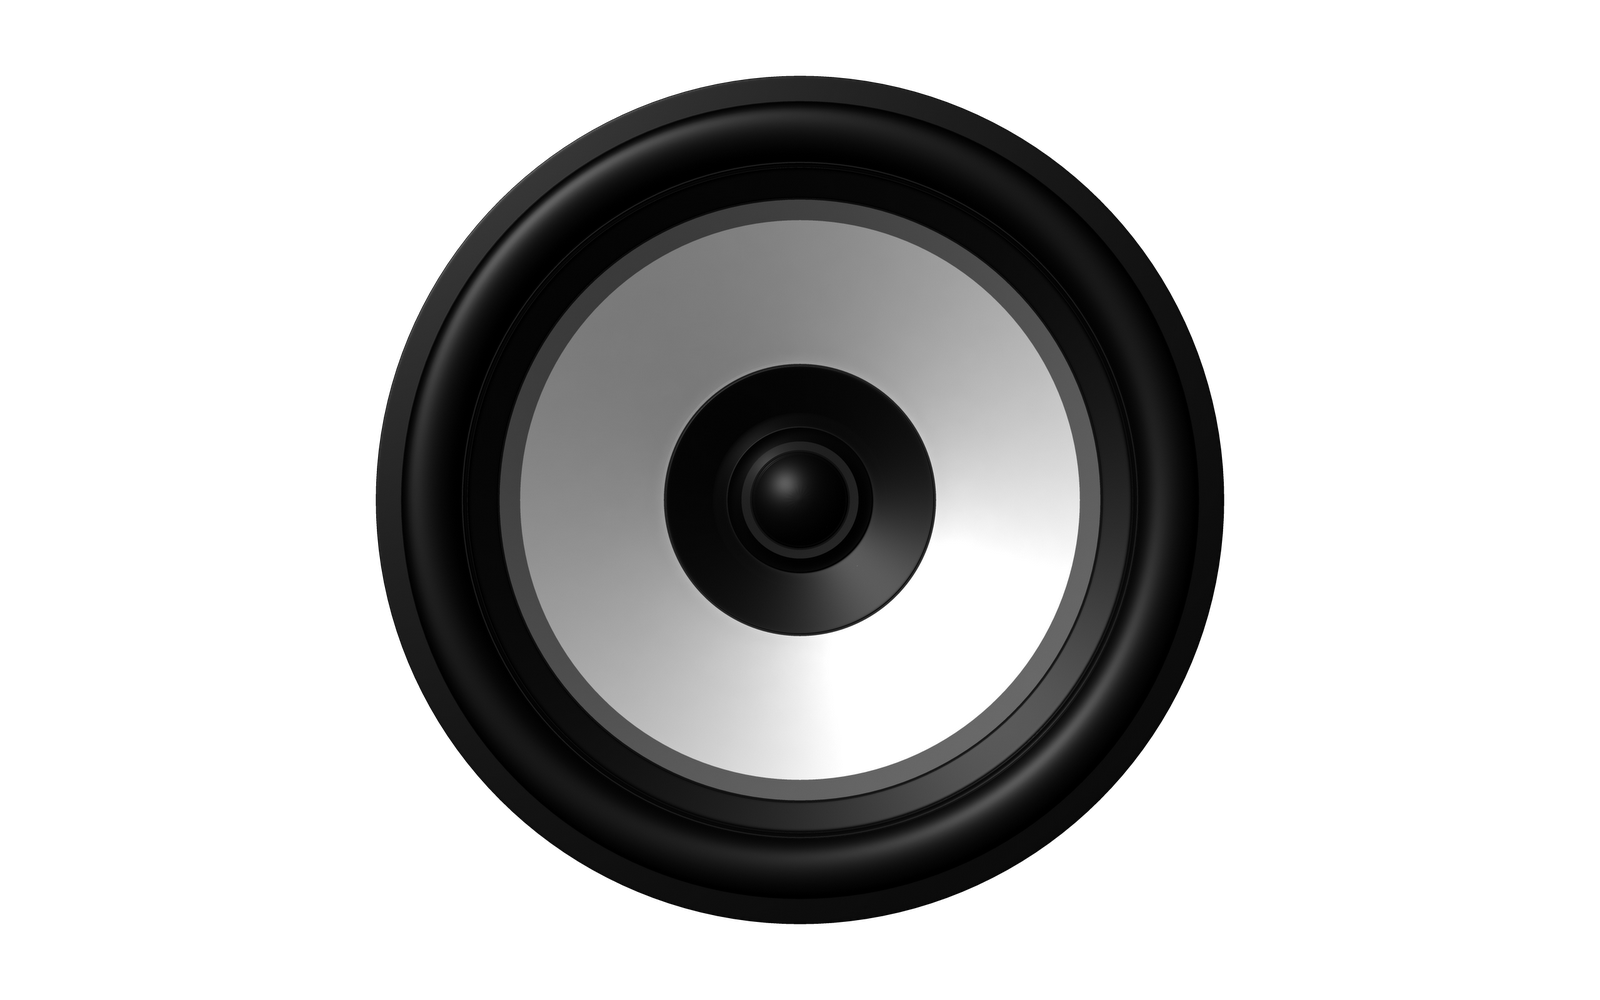 Audio Speakers Transparent Background PNG Image